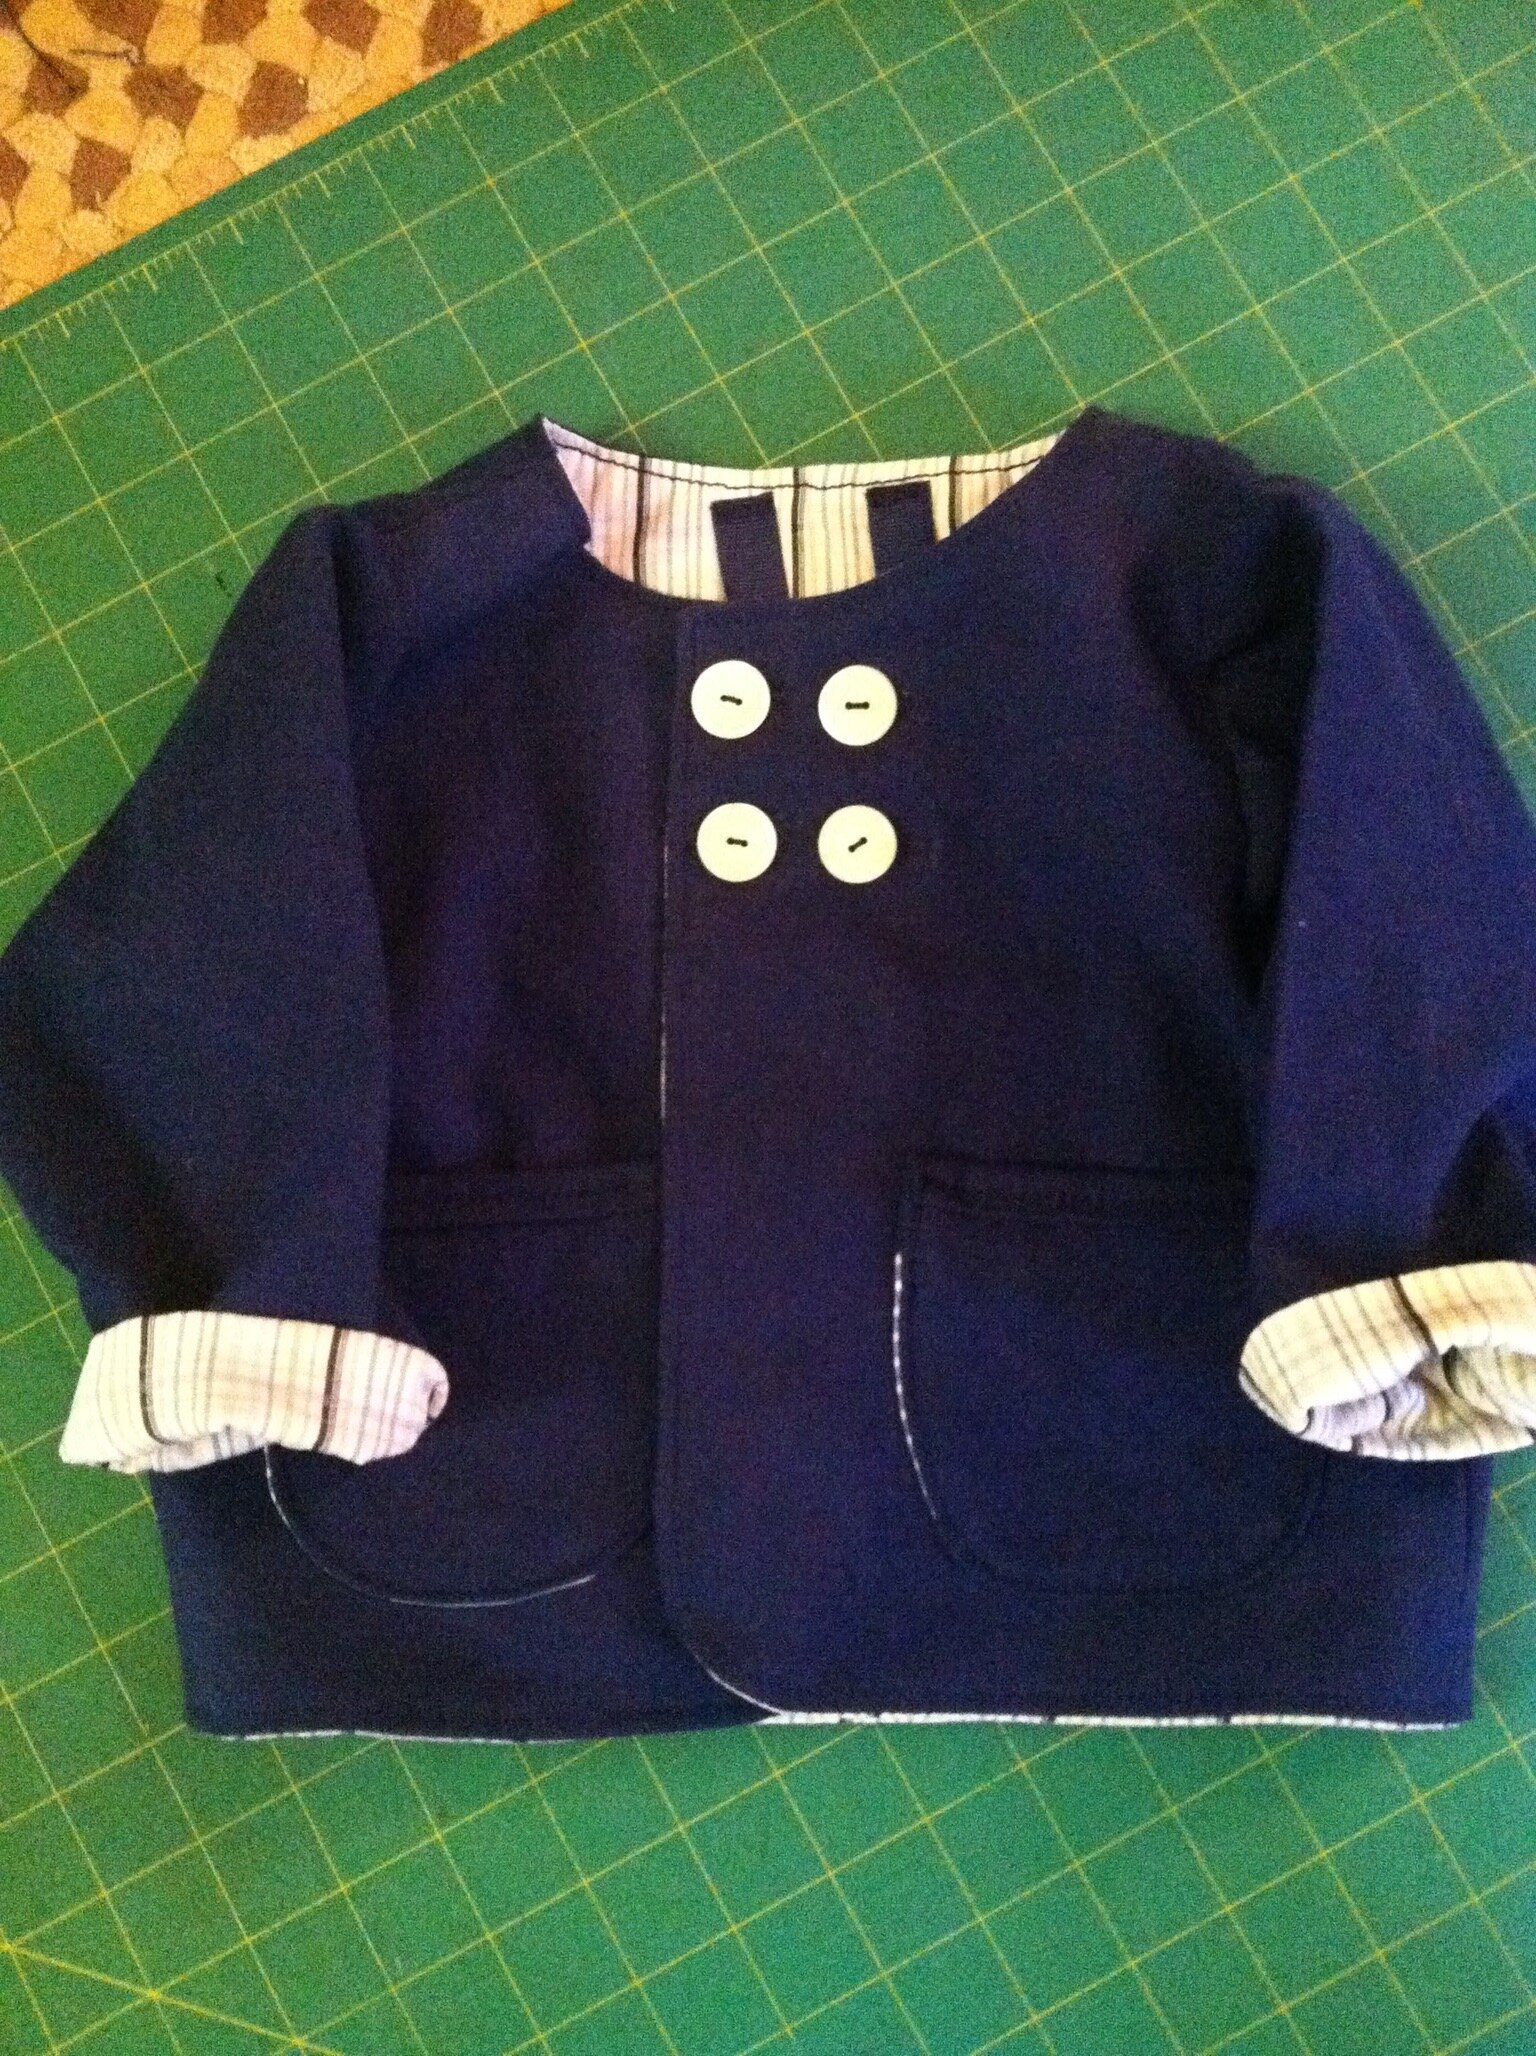 Early version of our Baby Jacket Hemp/organic cotton fabric lined with a men's shirt